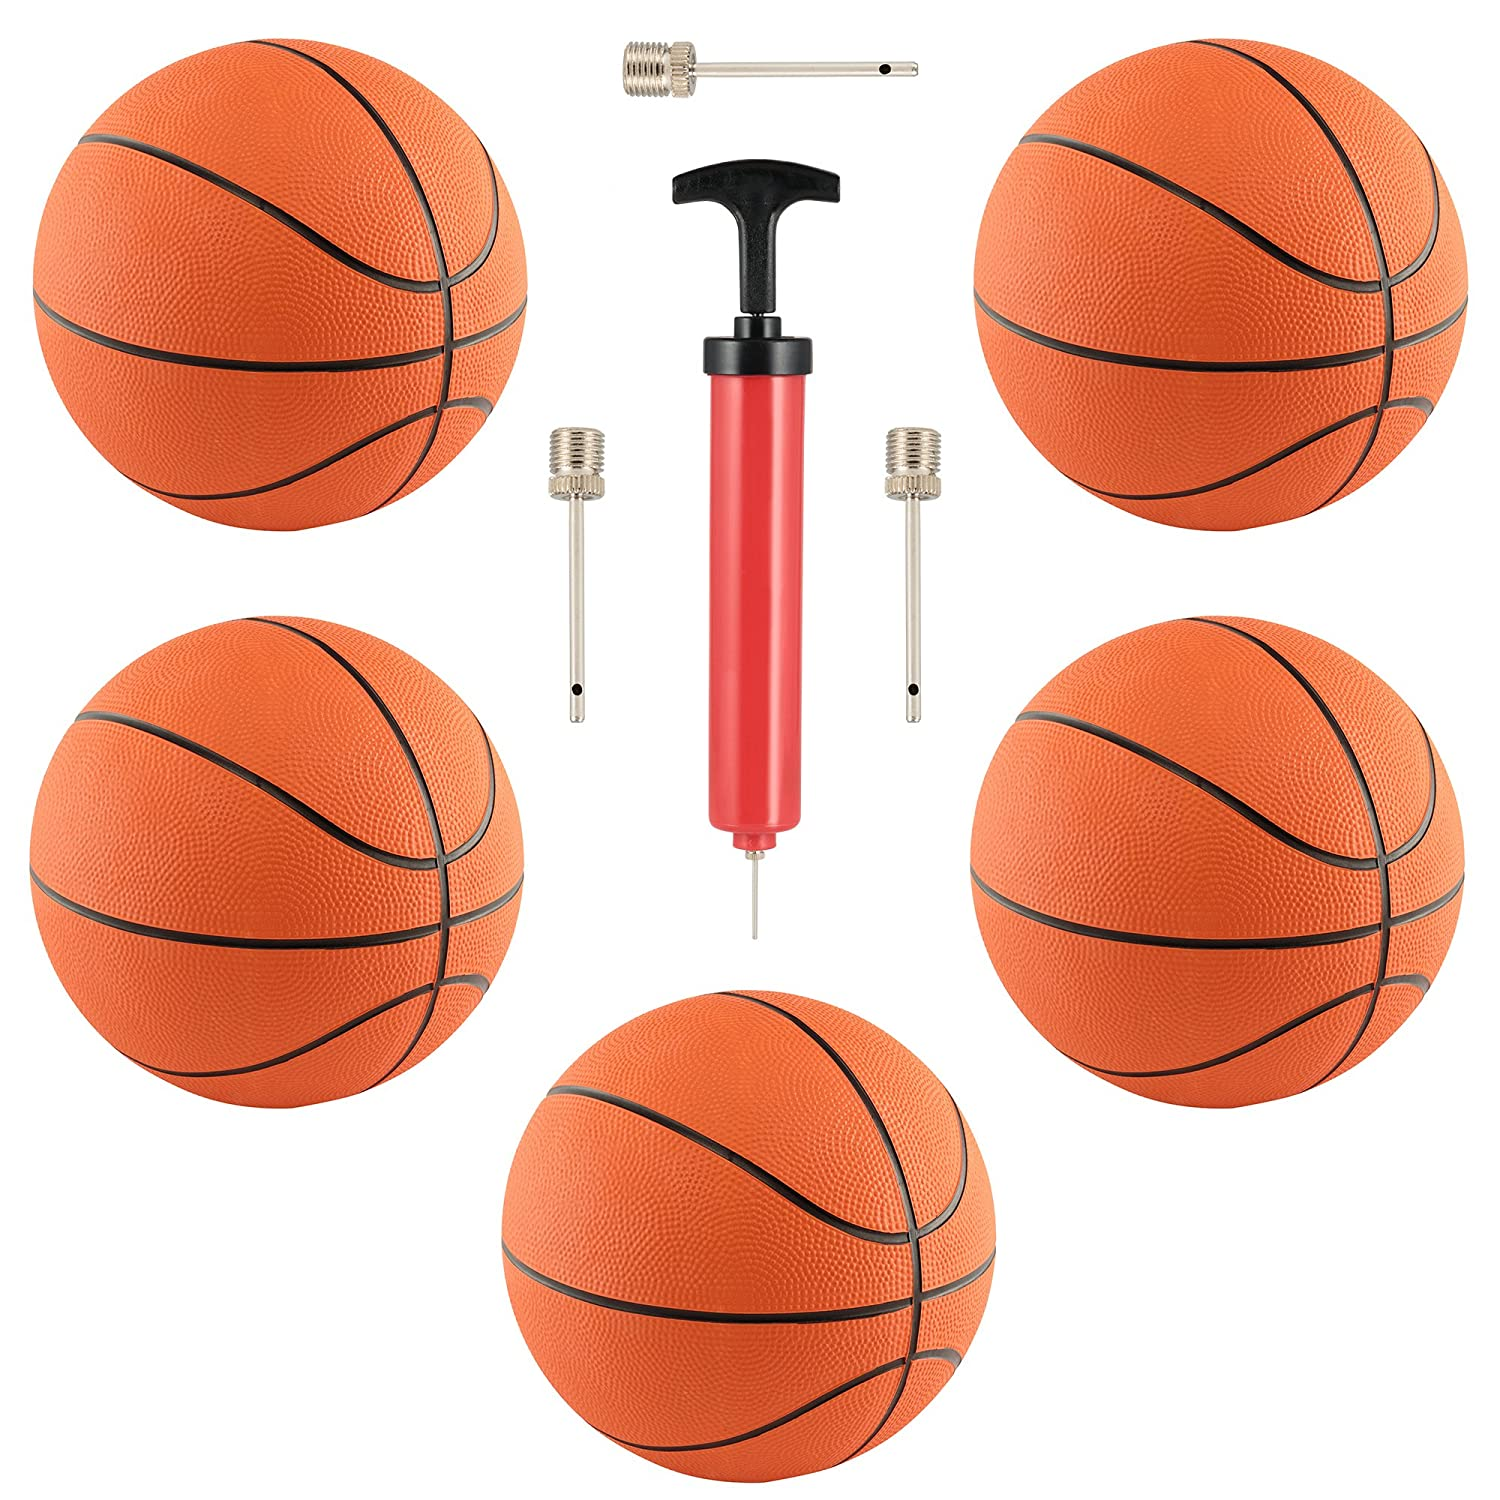 5 Pack Rubber 7 Basketballs for Indoor Outdoor Use. Includes 10 Hand Pump with Needle for Basketballs, and 3 extra needles By M M Products Online